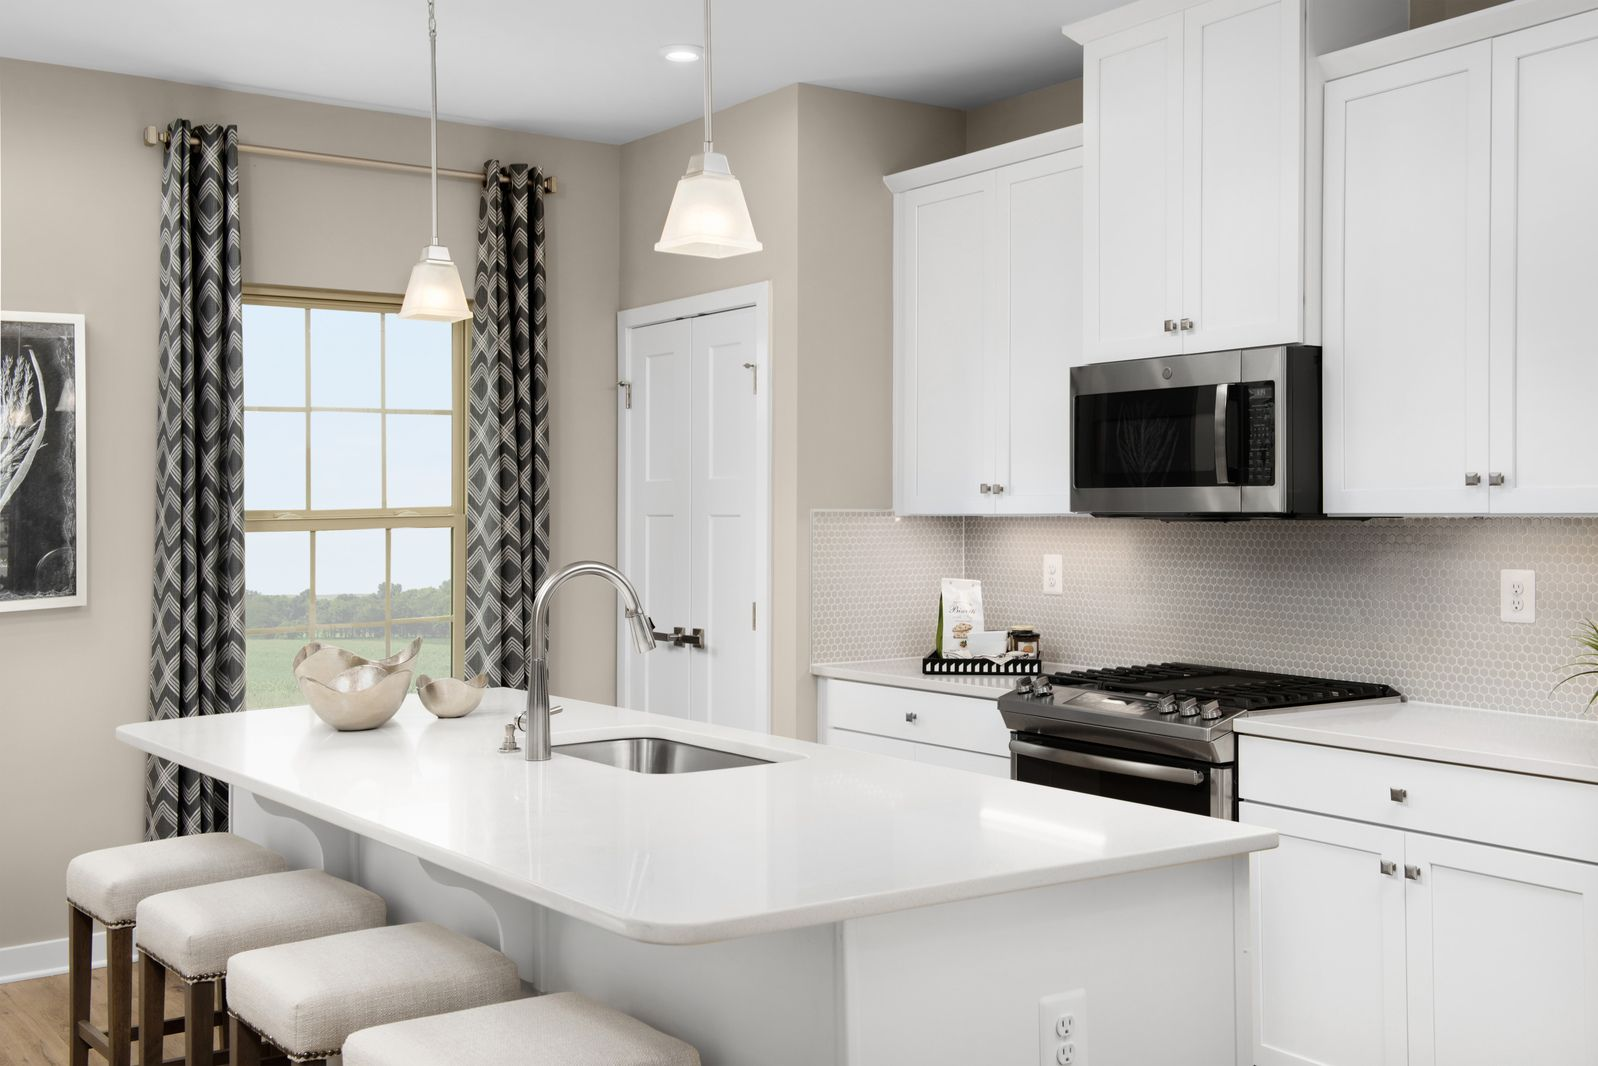 Kitchen featured in the Mendelssohn Front Garage By Ryan Homes in Washington, MD